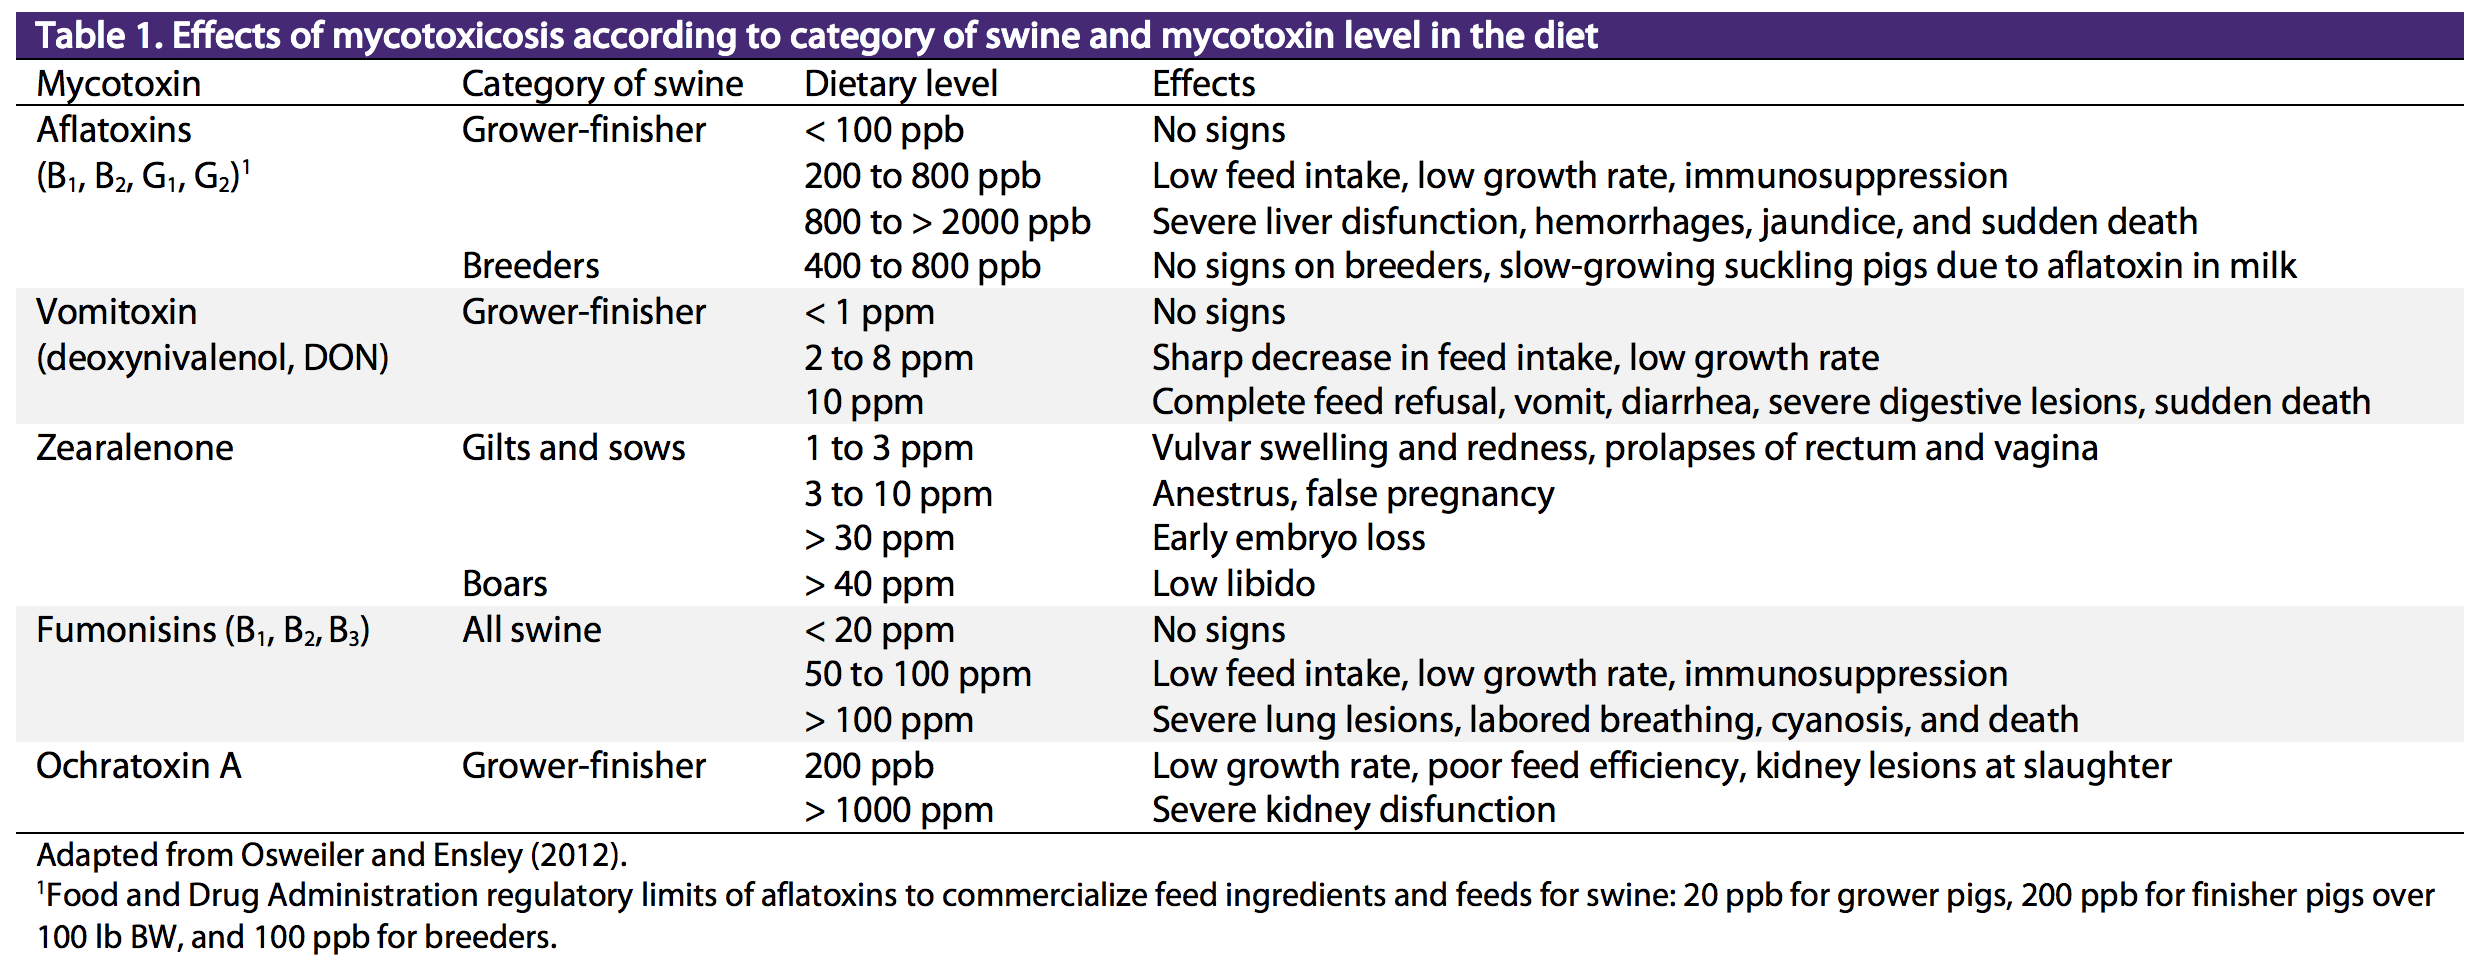 Effects of mycotoxins according to swine category and level